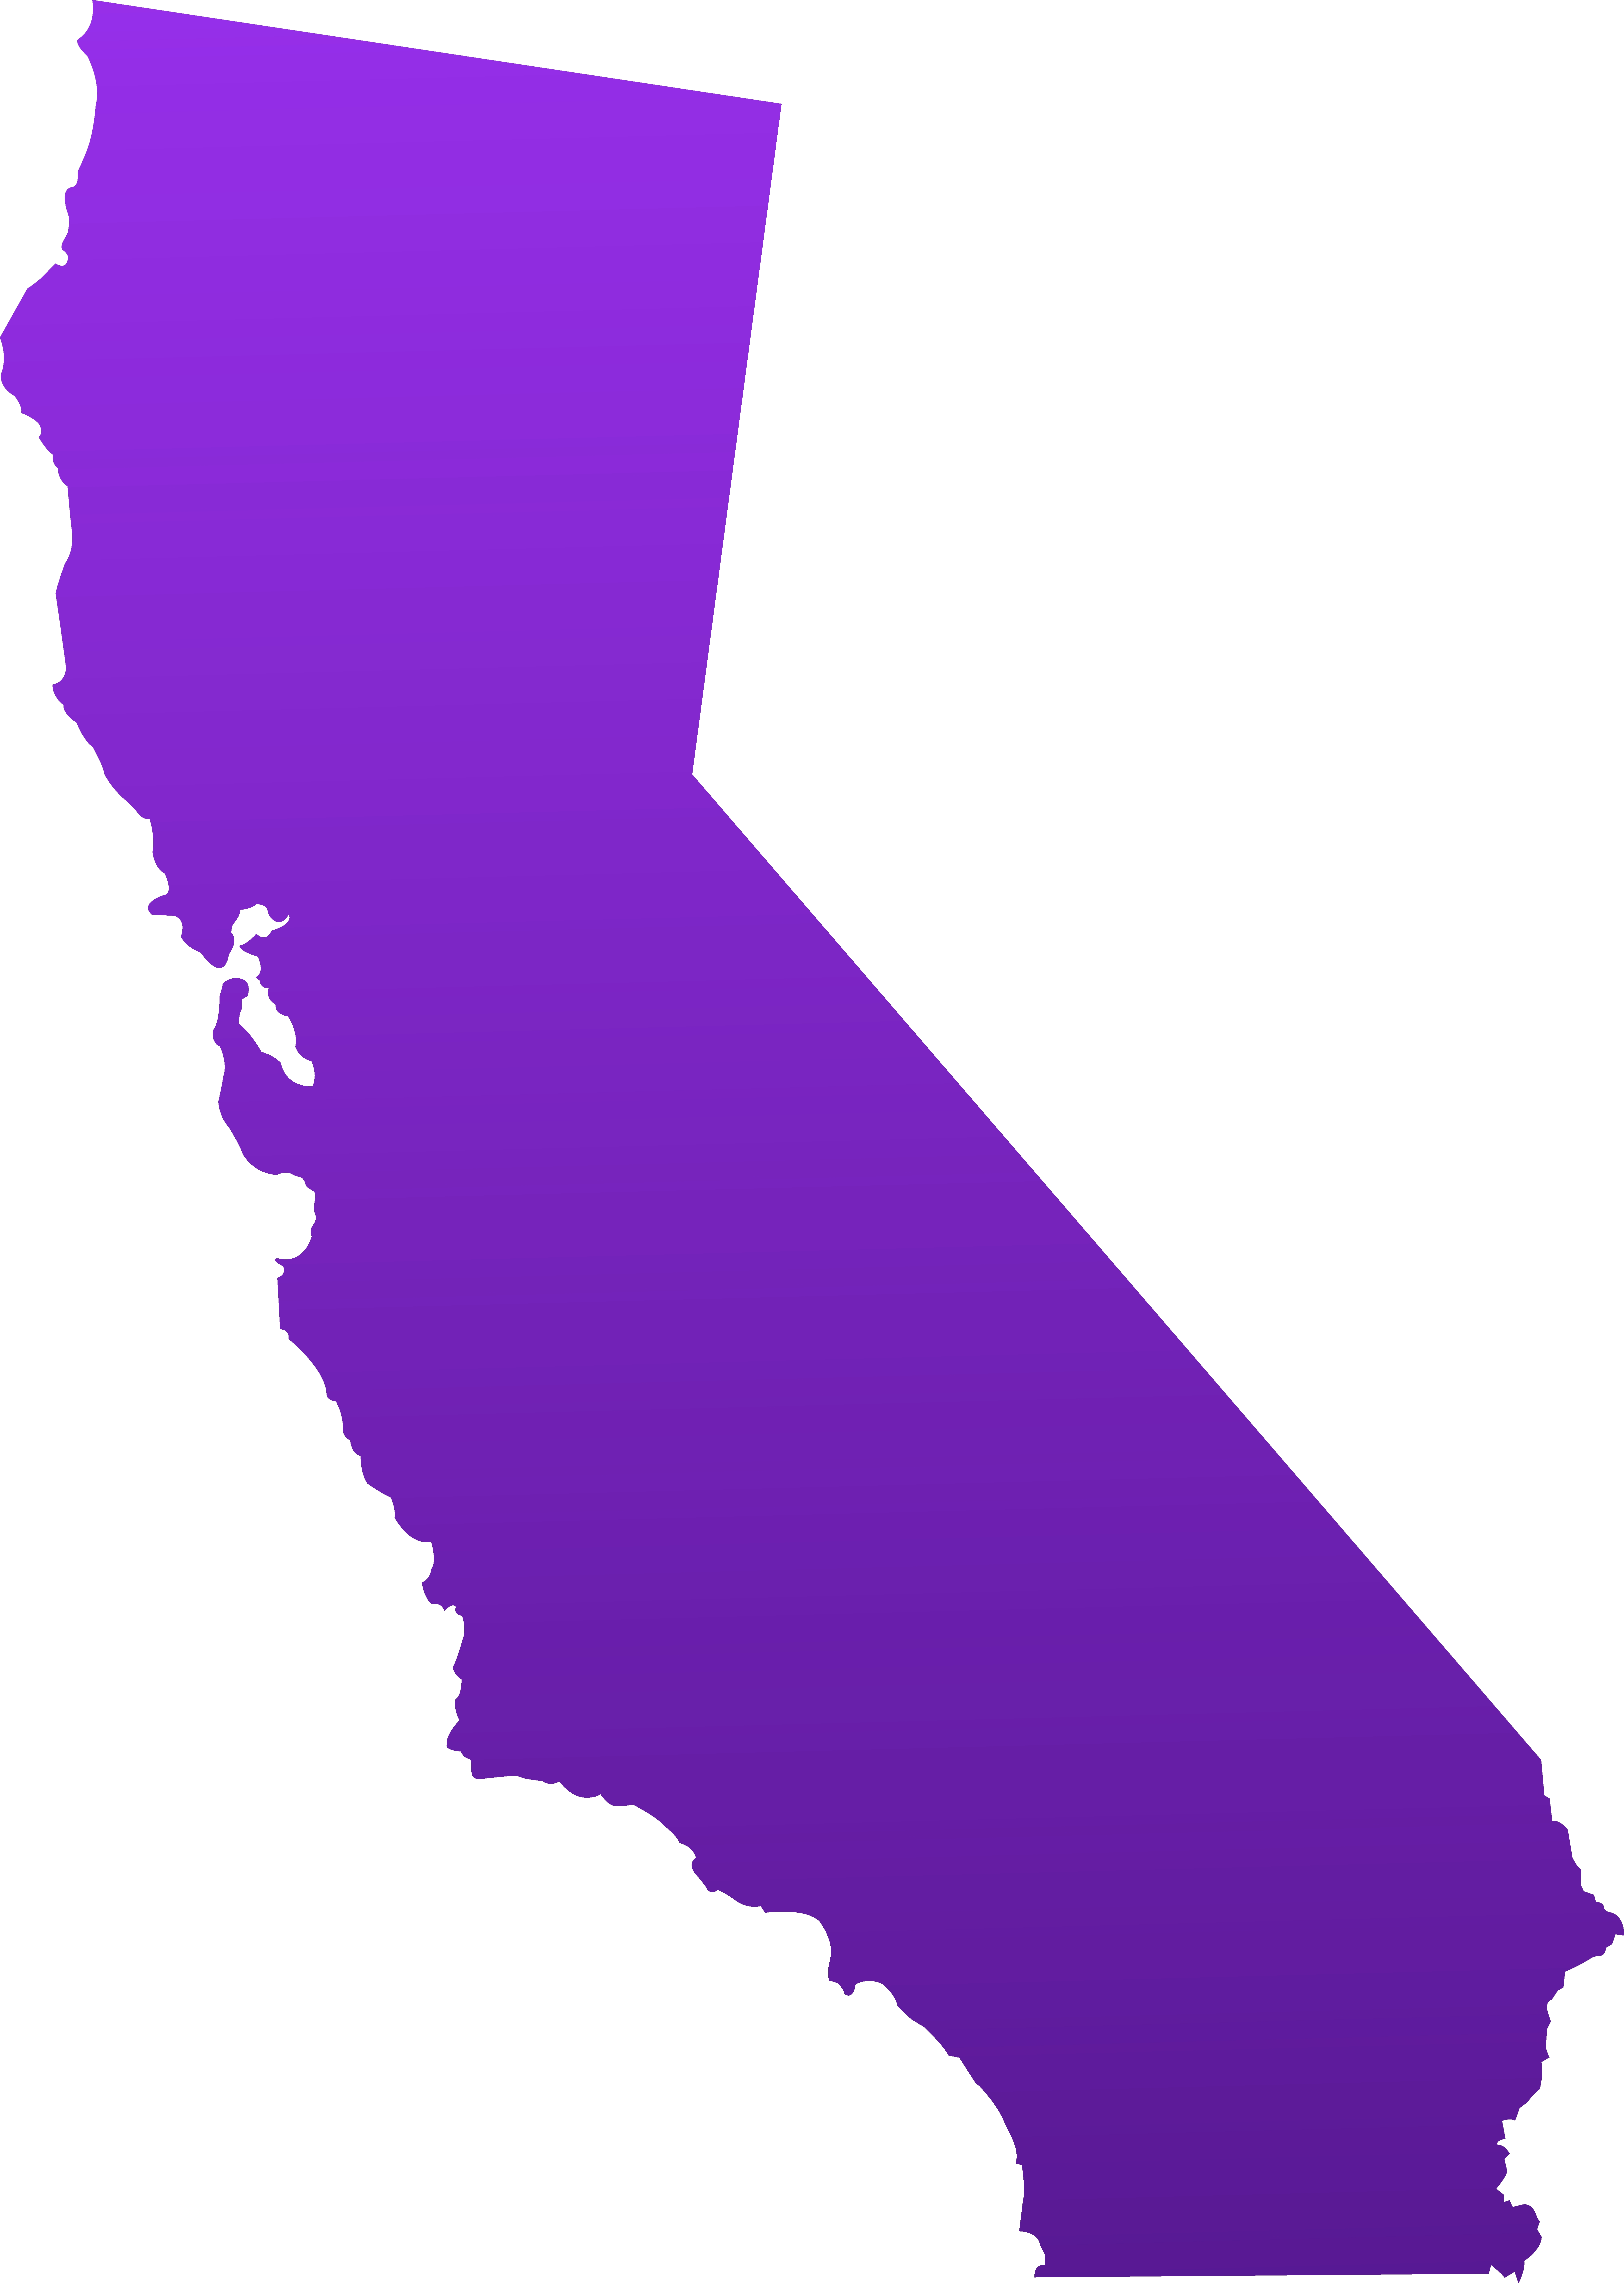 California clipart basic. Awesome collection digital g